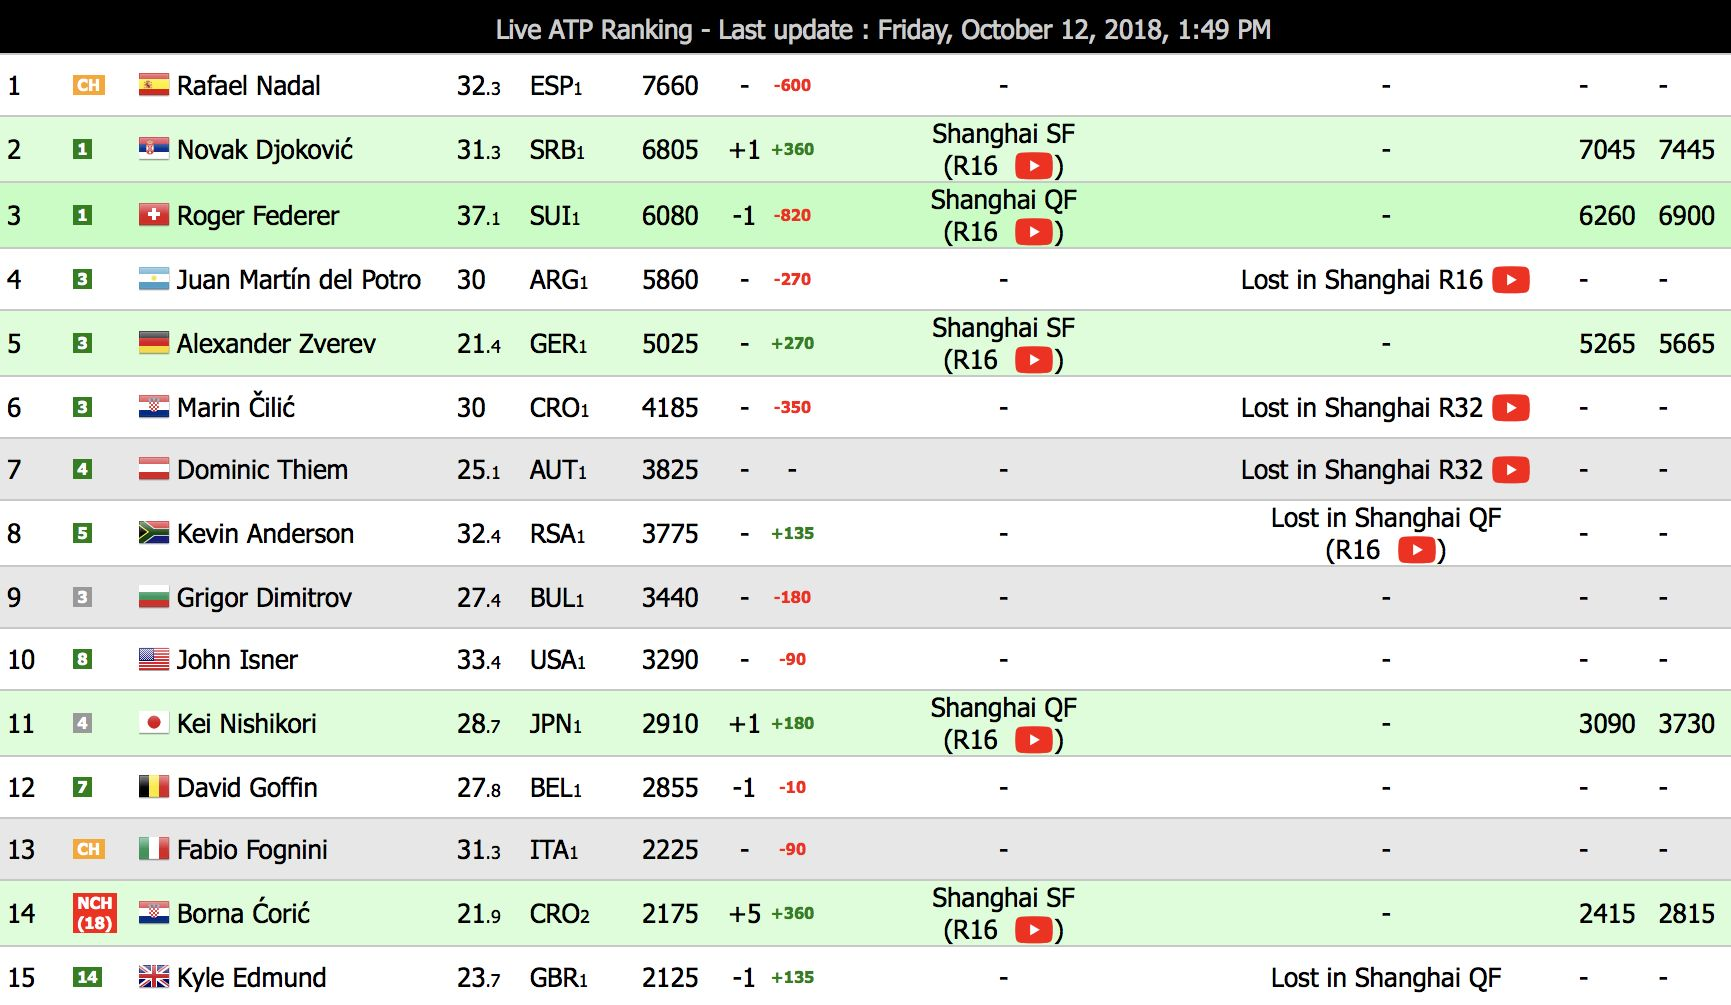 Croatia is the only nation with 2 tennis players in world's top 15 | Croatia Week